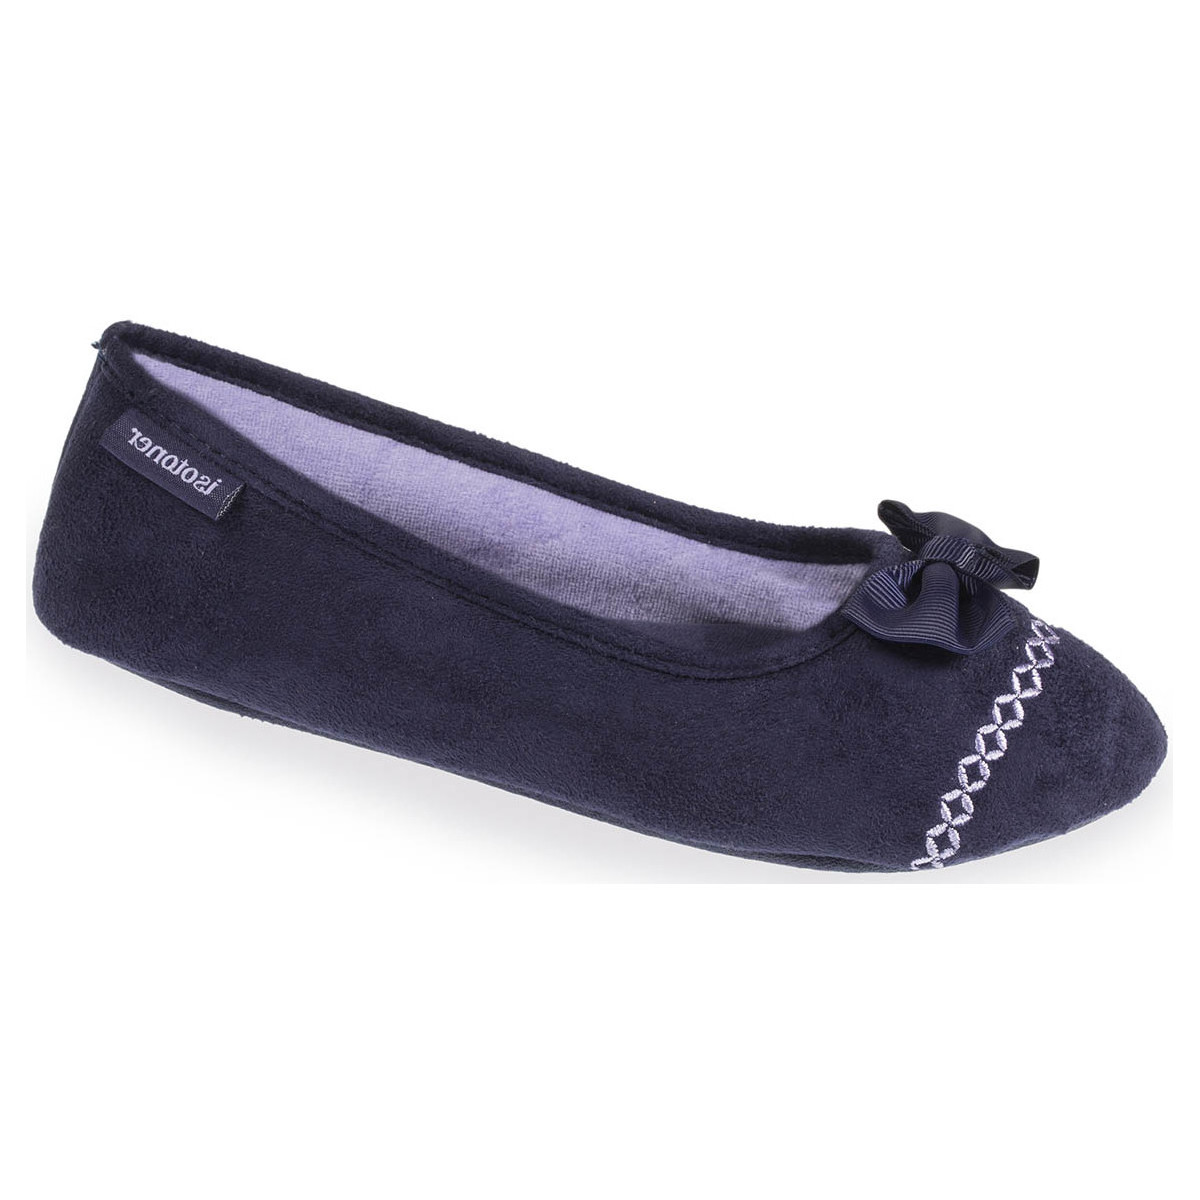 Isotoner Chaussons ballerines femme broderies marine - Chaussures Chaussons Femme